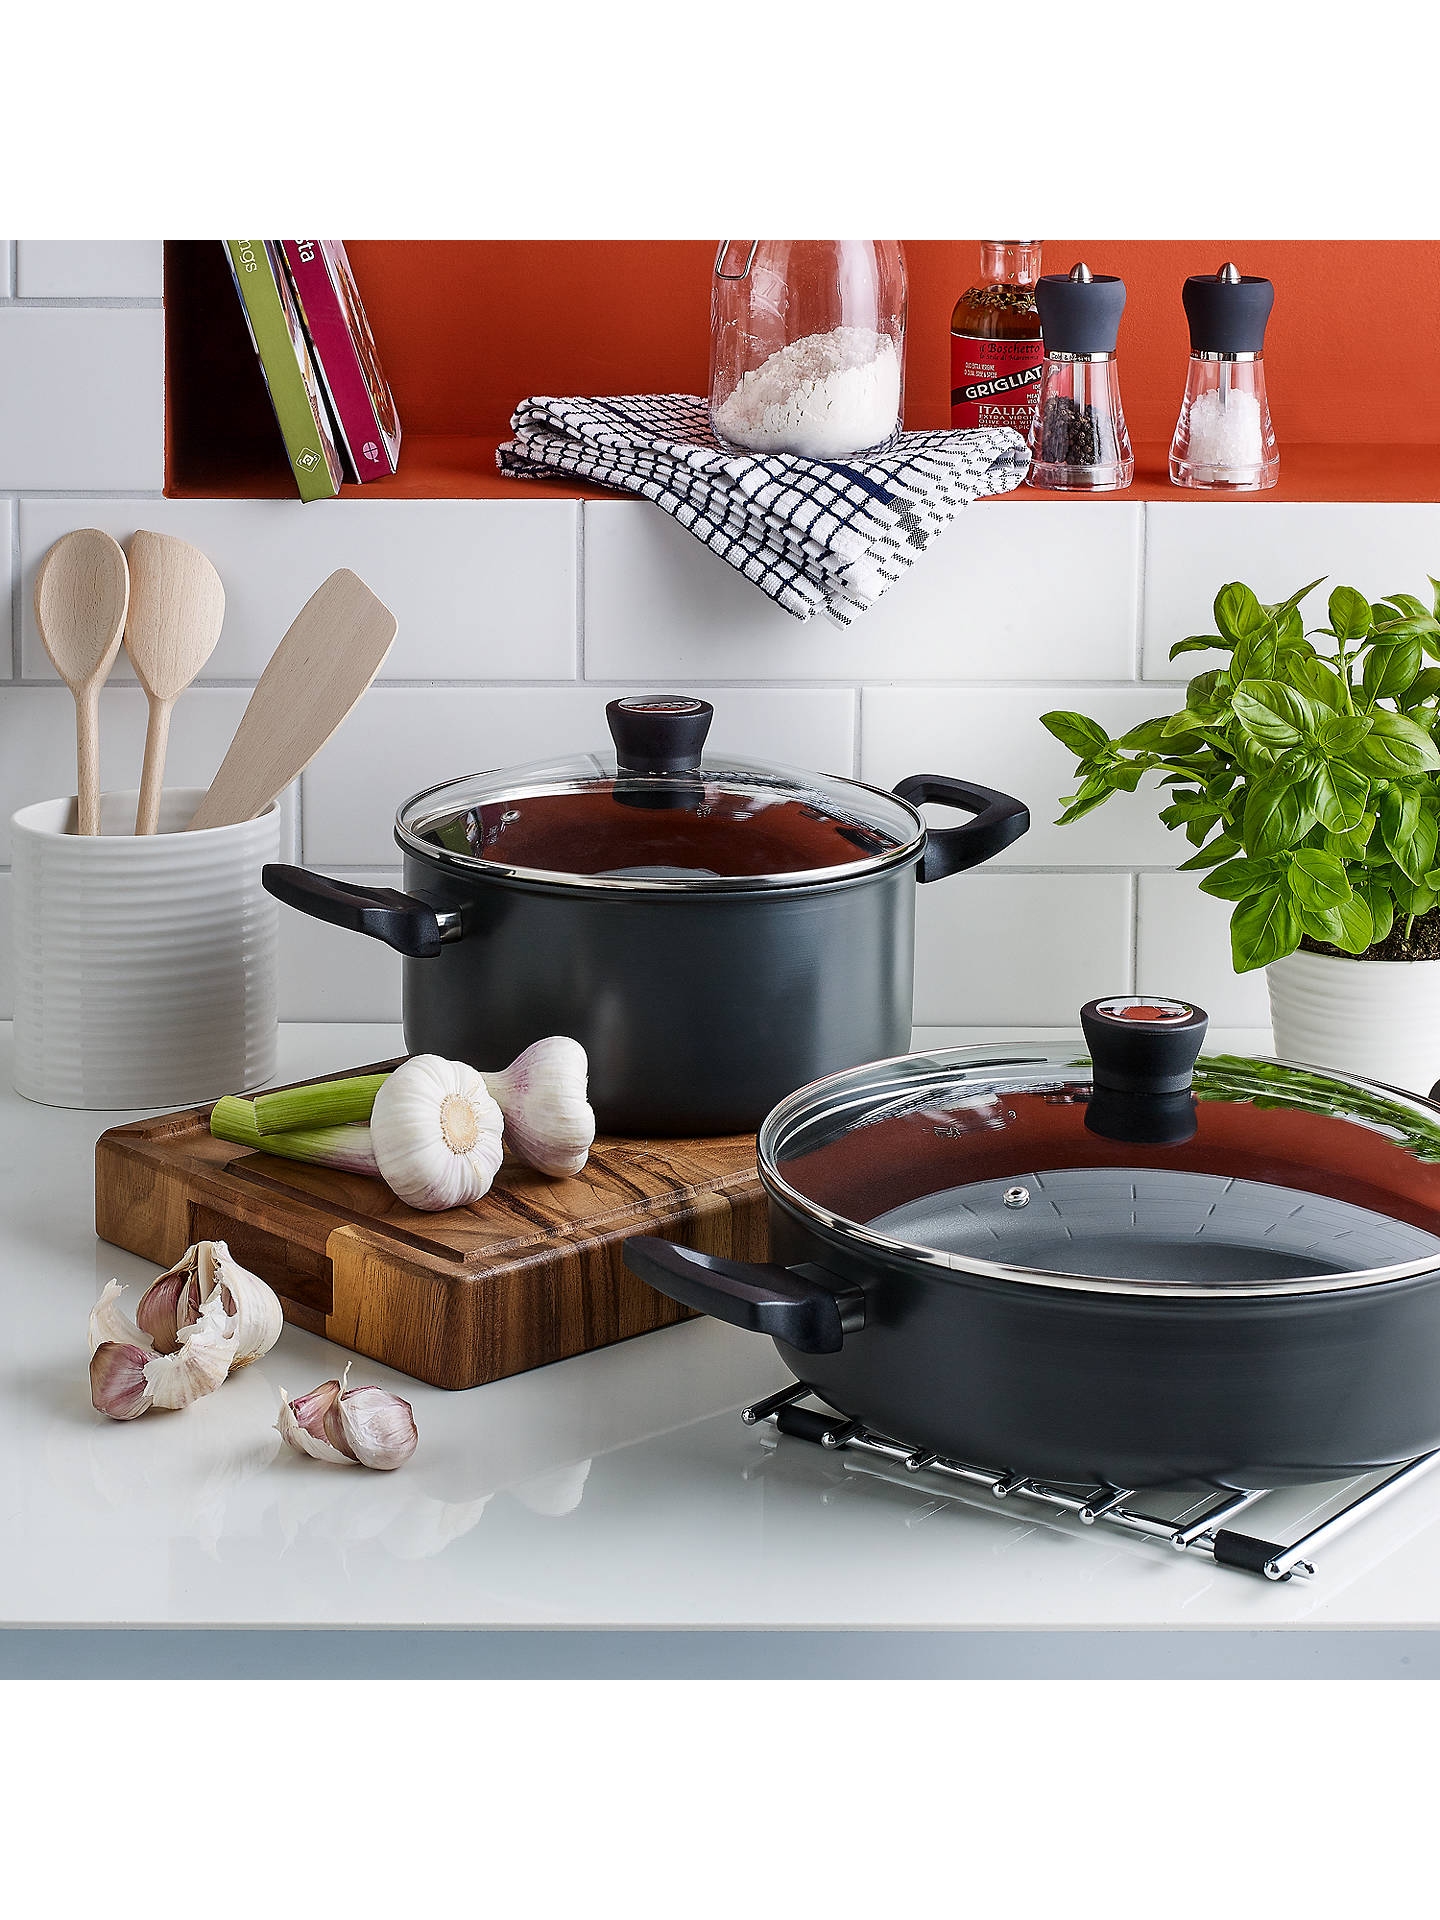 BuyJohn Lewis & Partners Hard Anodised Aluminium Non-Stick Stockpot, 24cm Online at johnlewis.com